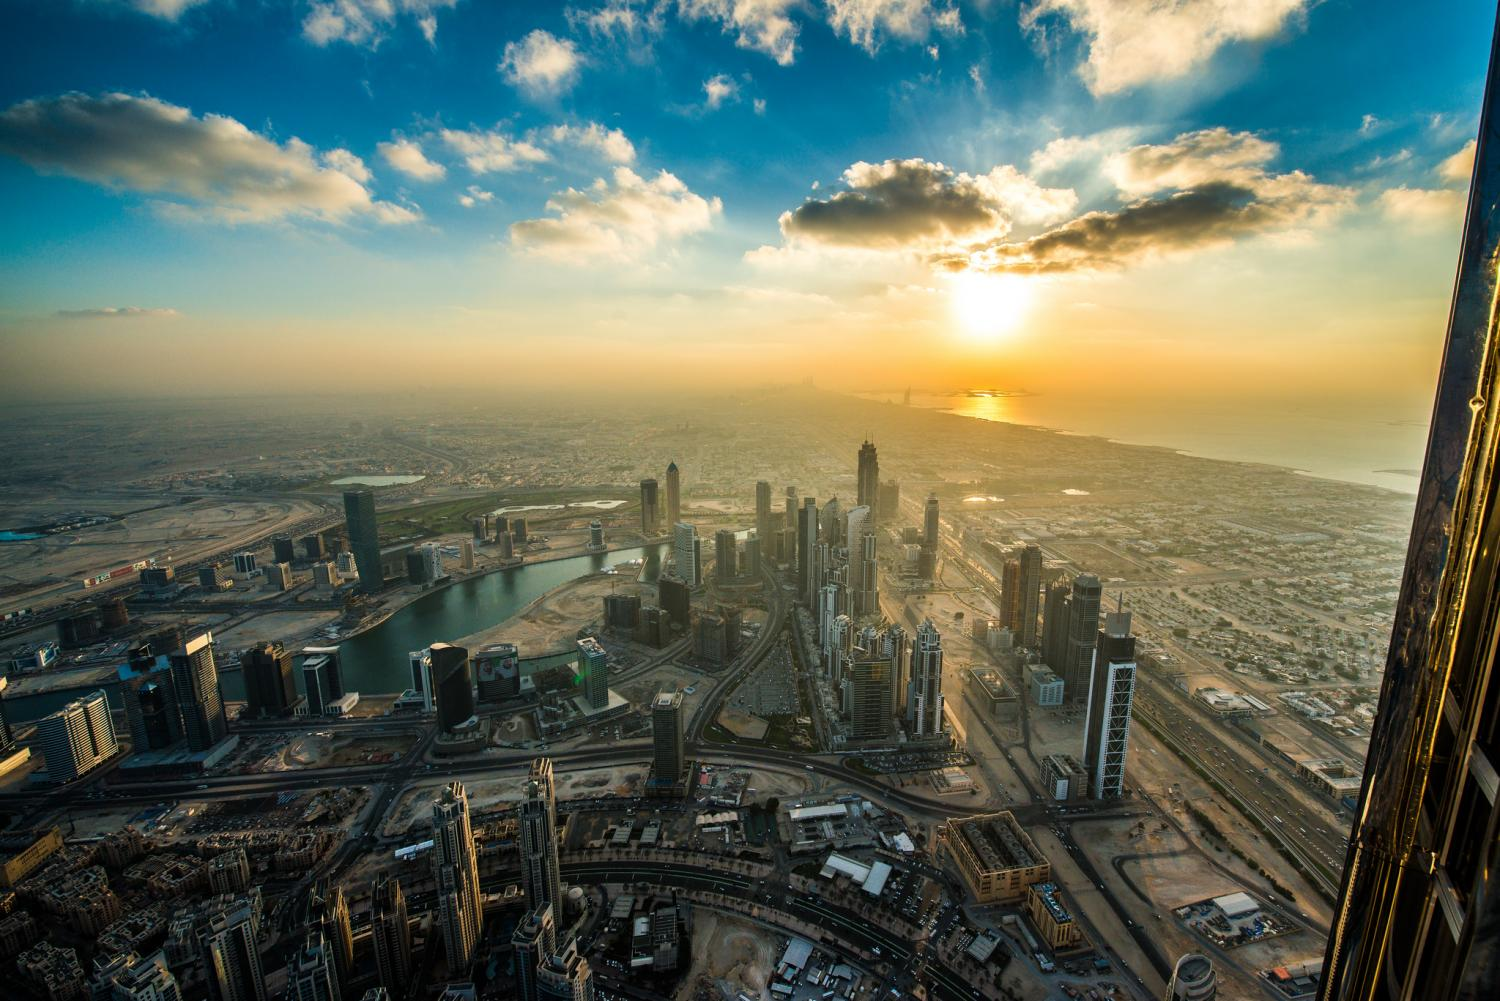 As Expo 2020 approaches, Dubai insists clean technologies such as hydrogen-powered fuel cells are in its future.